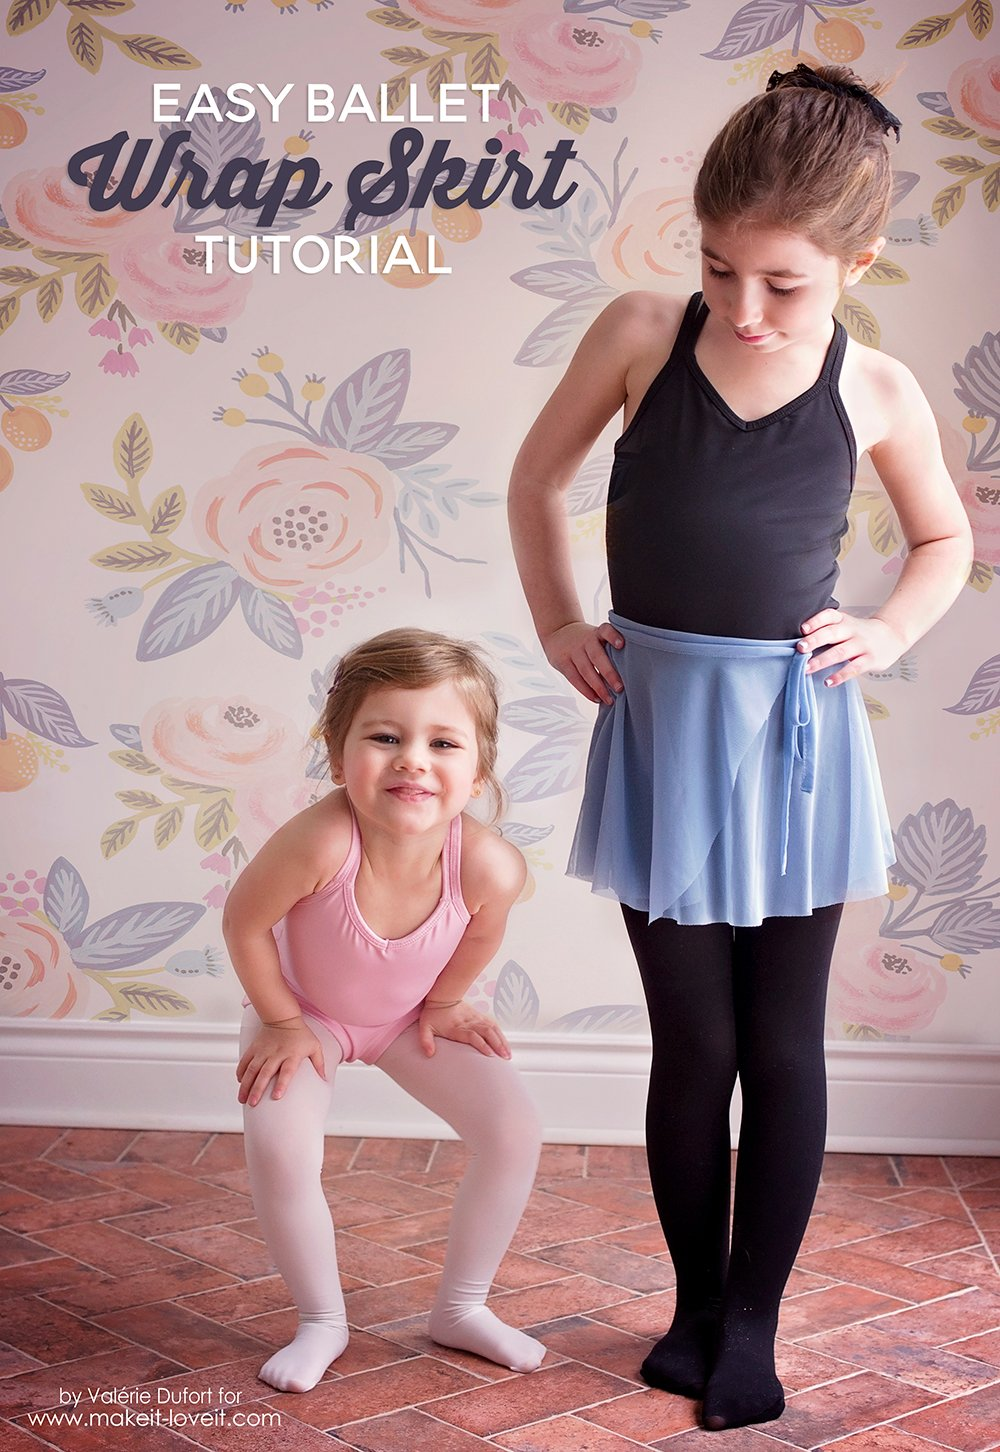 Easy Ballet Wrap Skirt Tutorial | via www.makeit-loveit.com